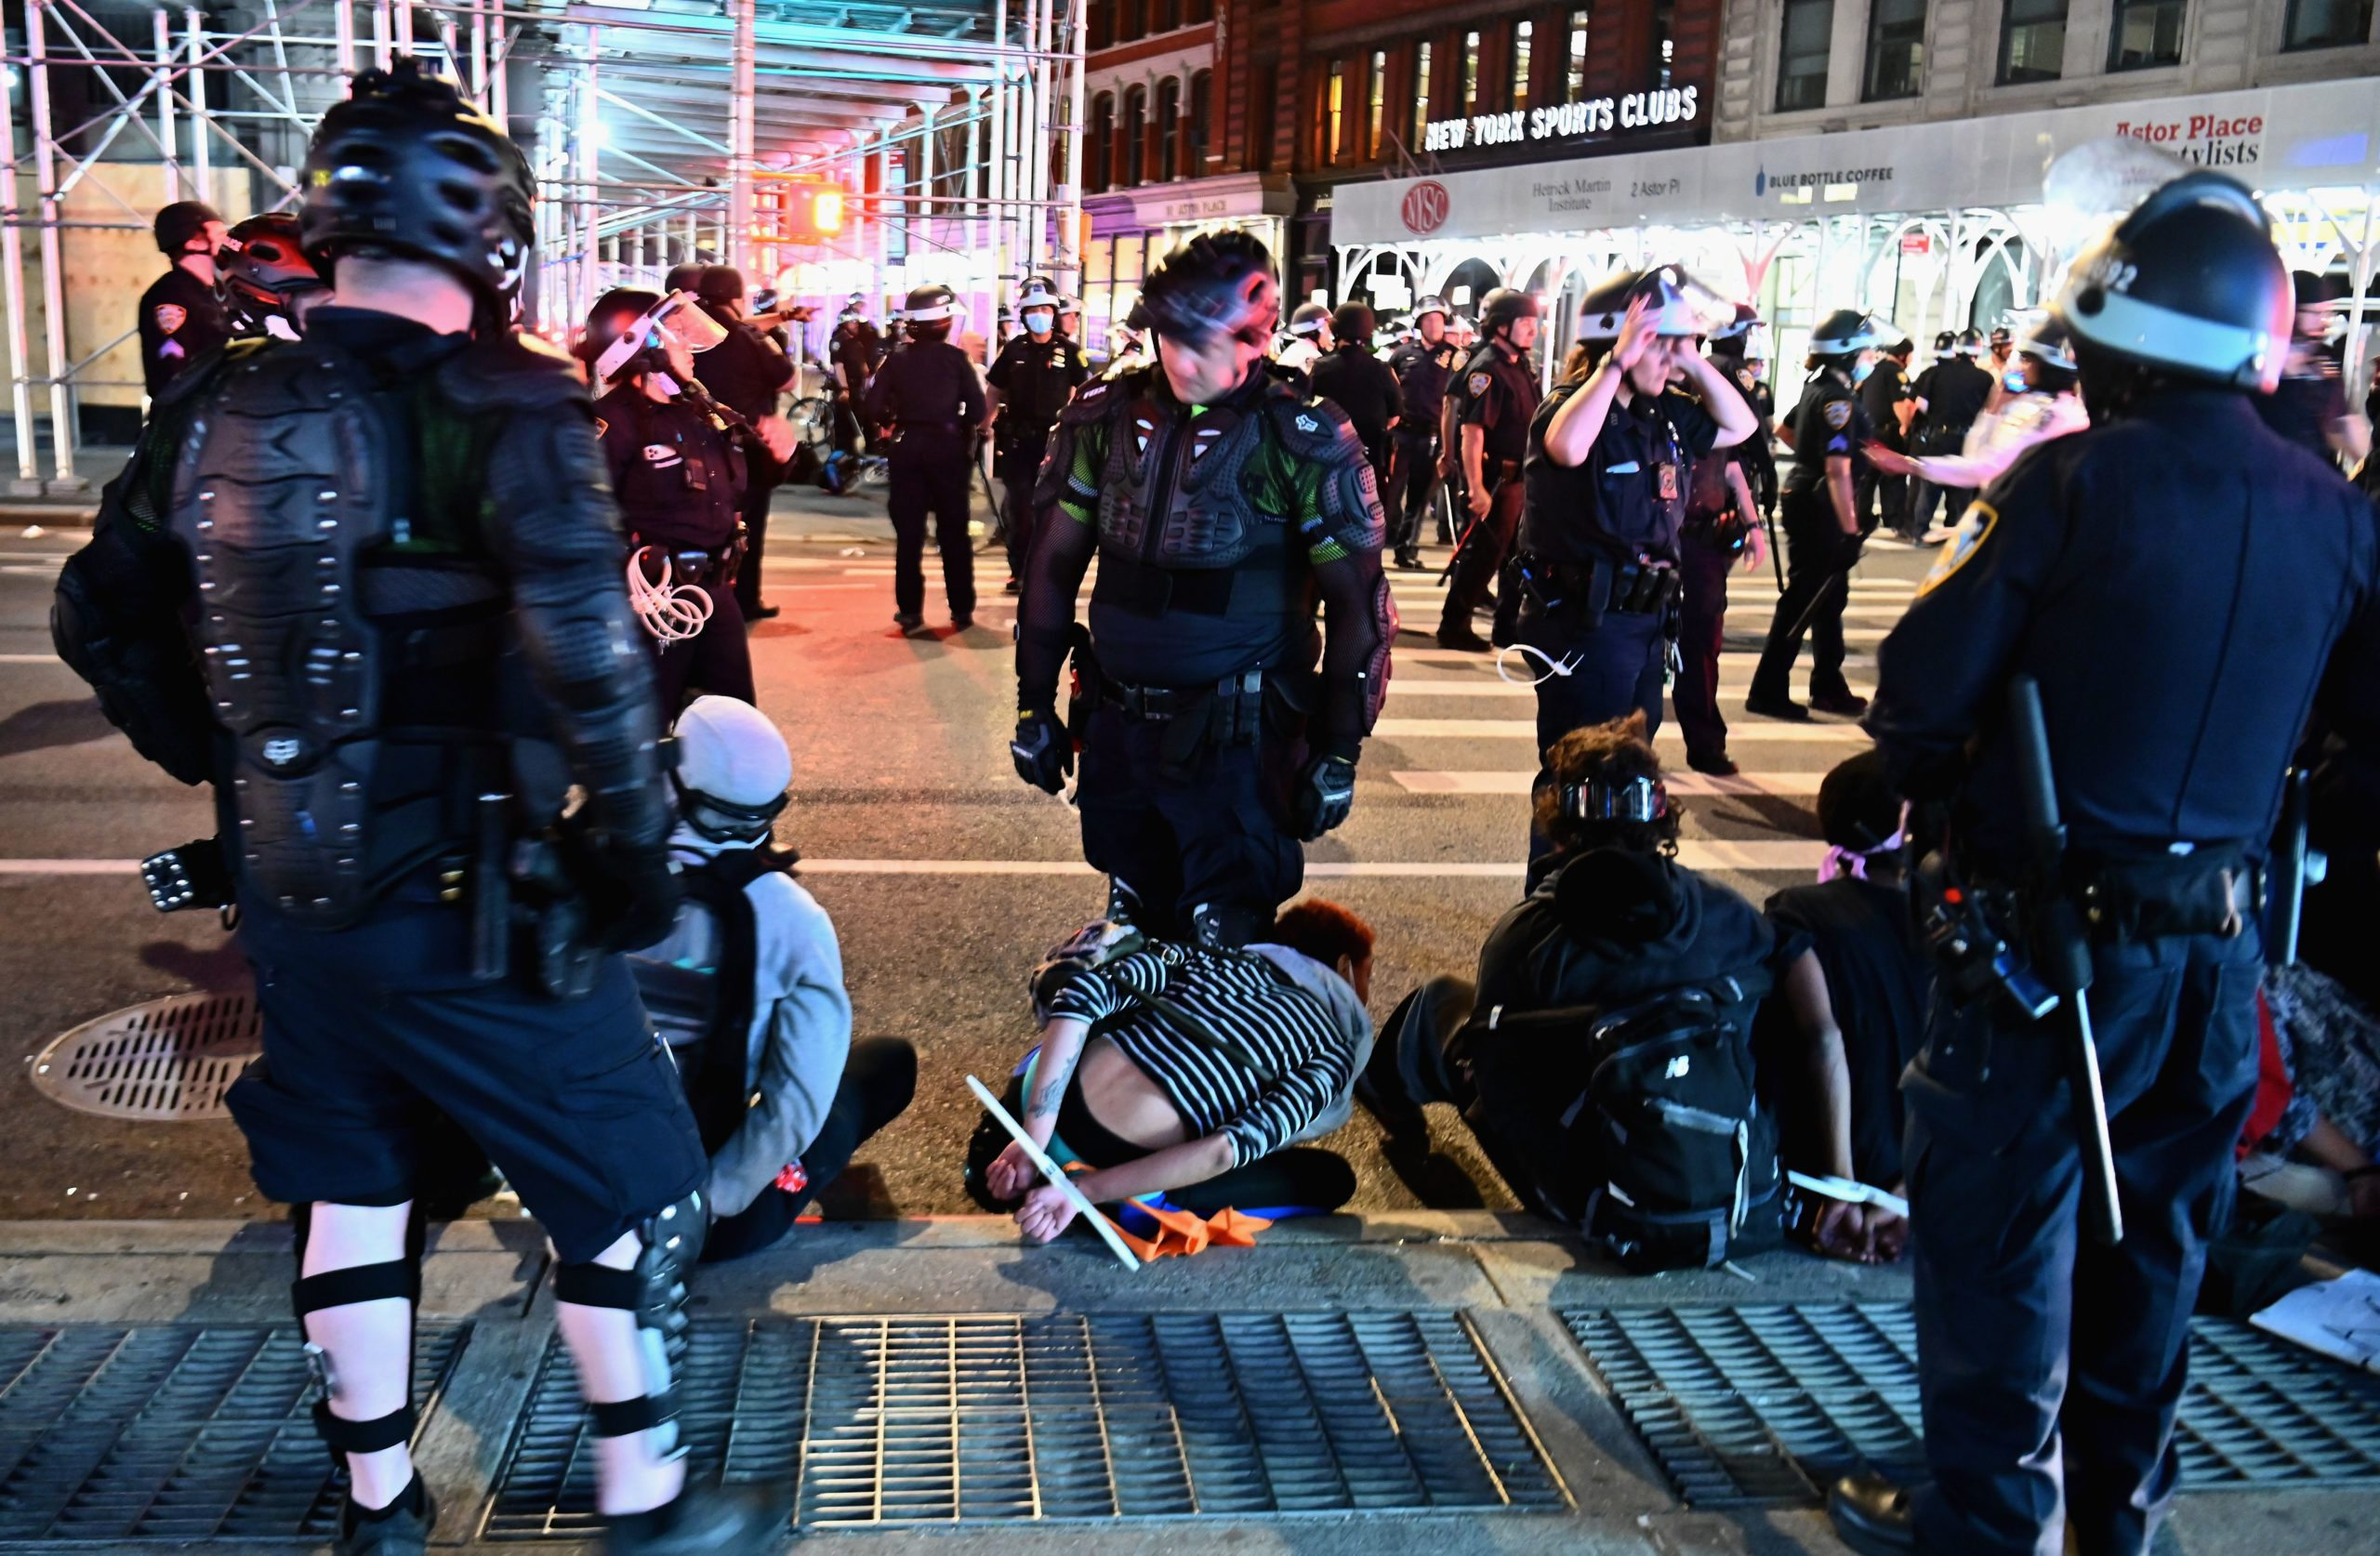 People are arrested after looting on June 2, 2020 in New York City. - Anti-racism protests have put several US cities under curfew to suppress rioting, following the death of George Floyd while in police custody. (ANGELA WEISS/AFP via Getty Images)